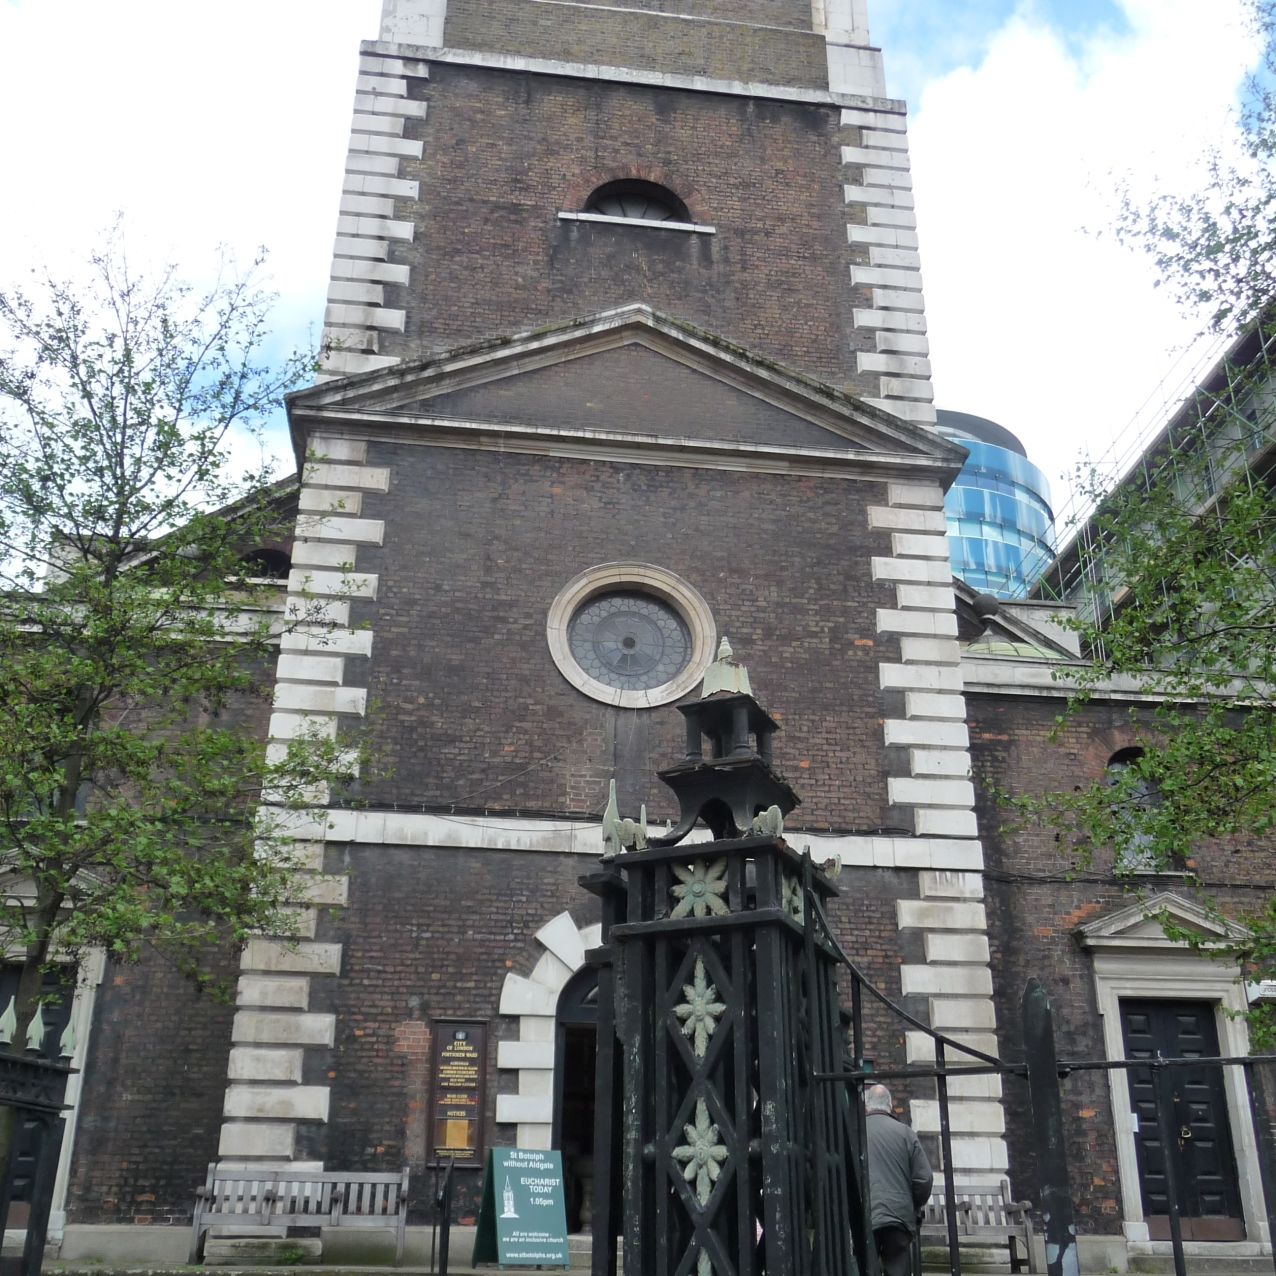 Outside St Botolph's Aldgate